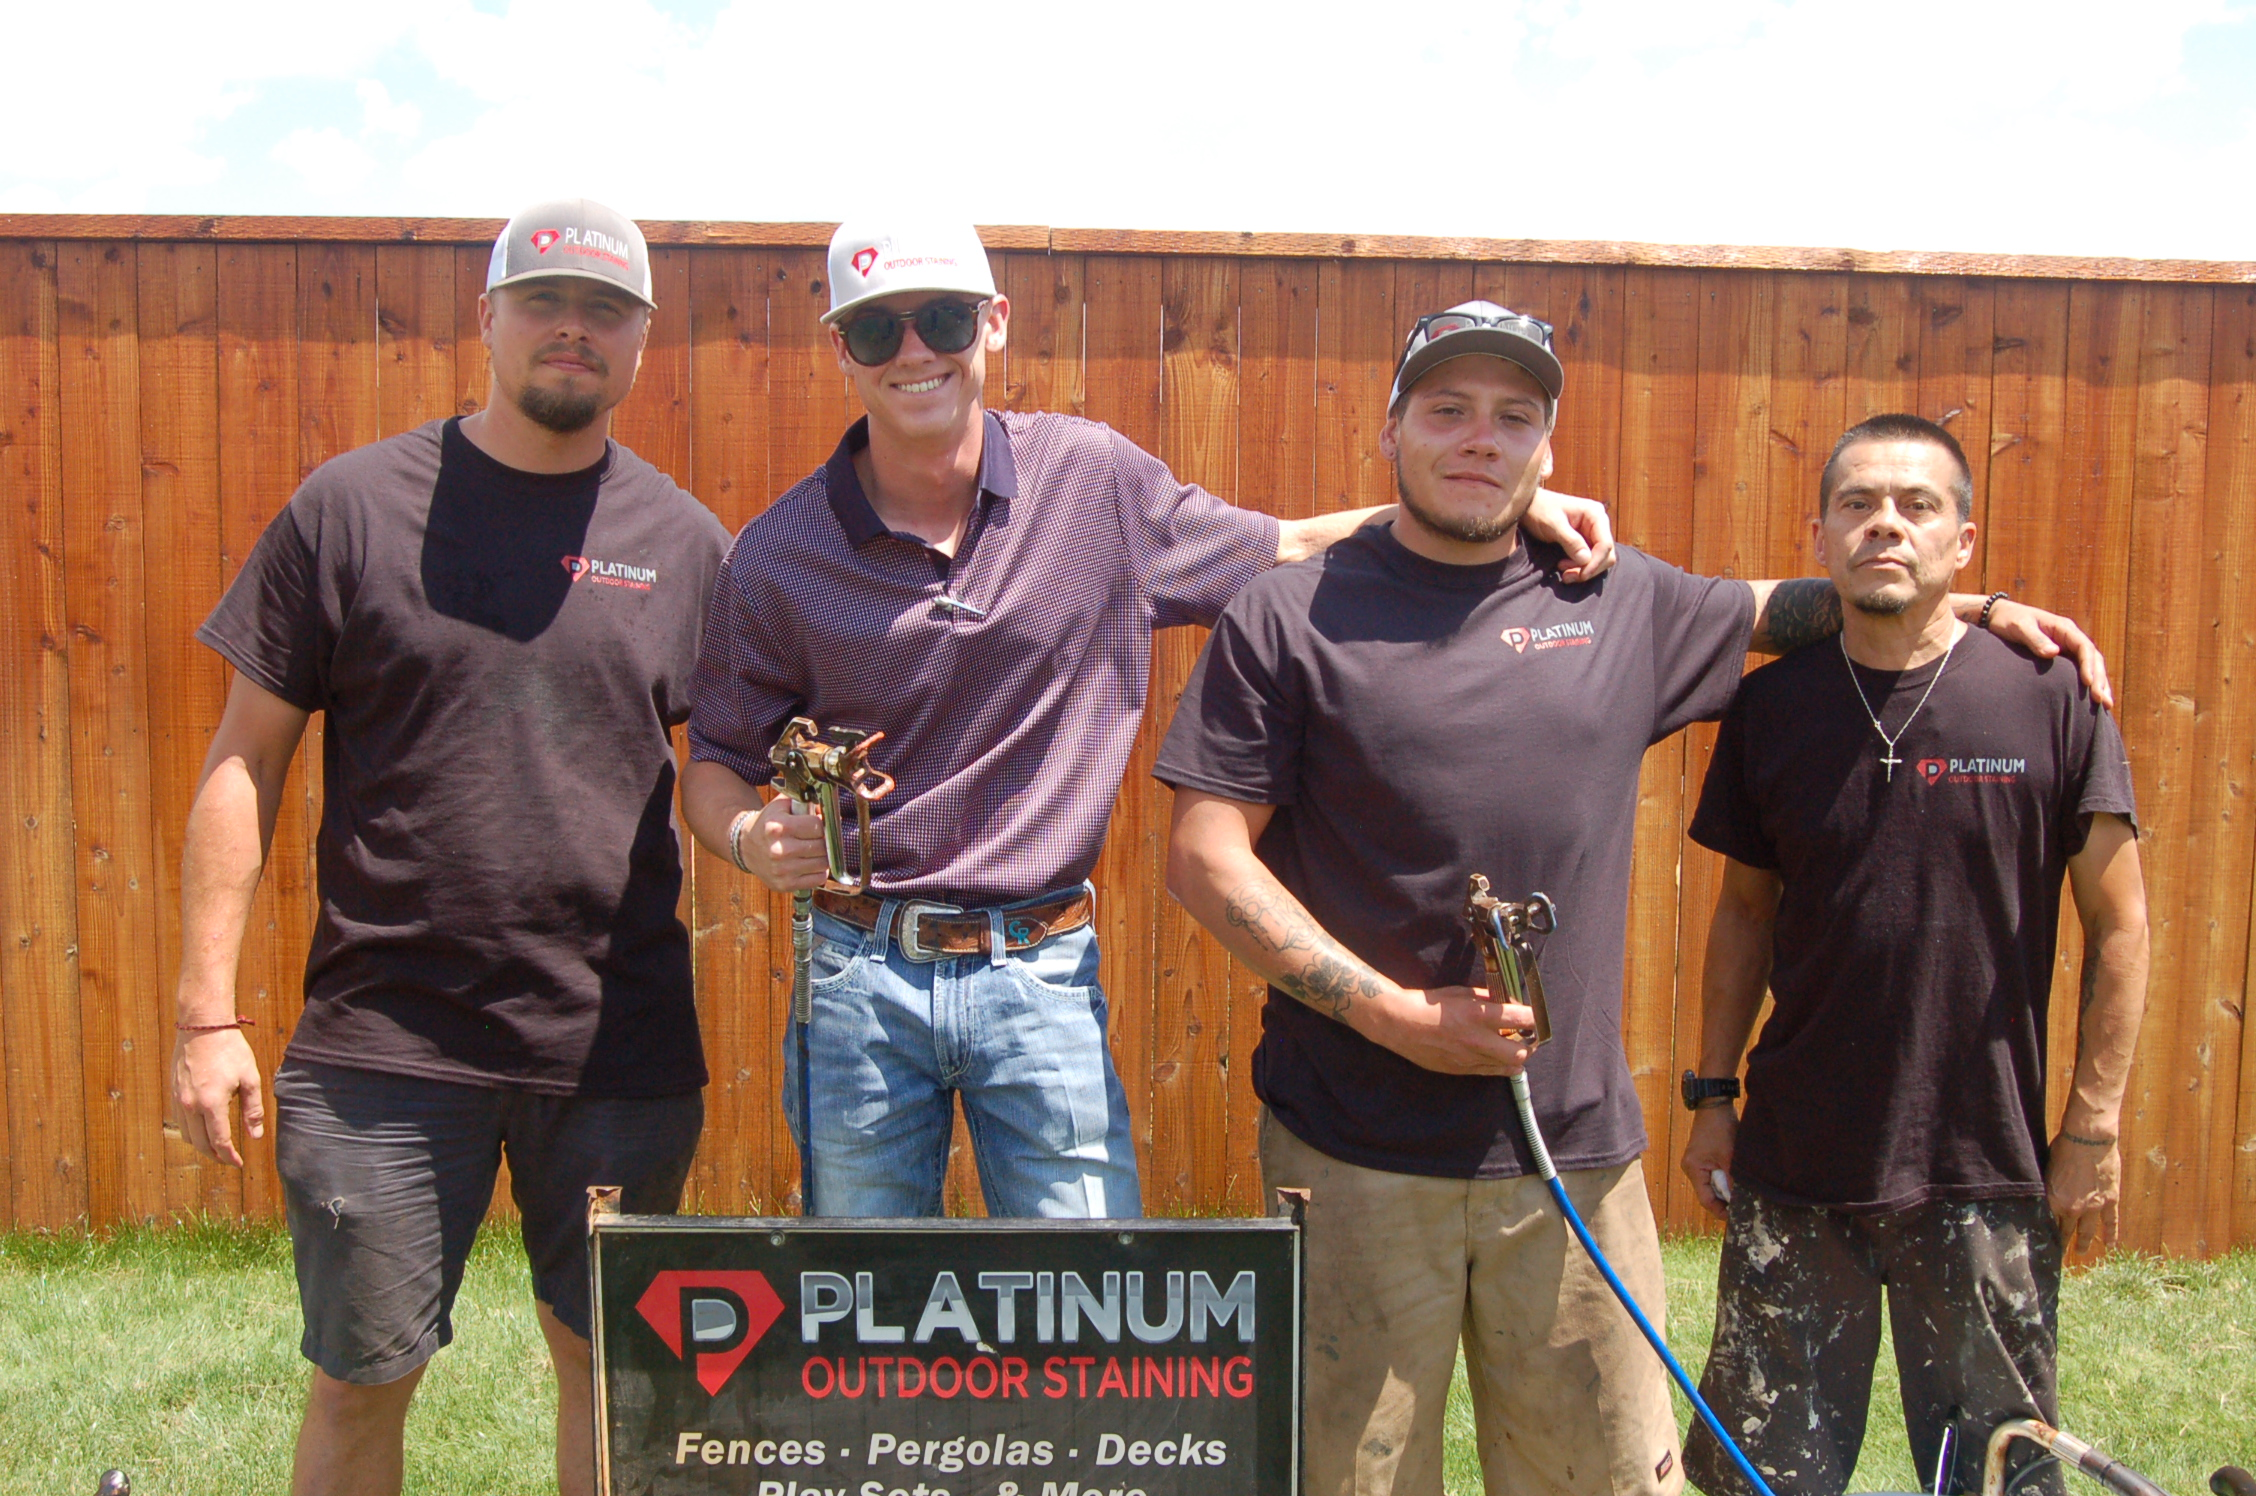 About Platinum Outdoor Staining - started in March of 2017 by Colt Ryan. After high school, he moved to Lubbock working until finally branched out on his own and started Platinum Outdoor Staining. Two years in and having connected with custom home builders growing their reputation they continue to find new ways to serve their customers with reliable service.